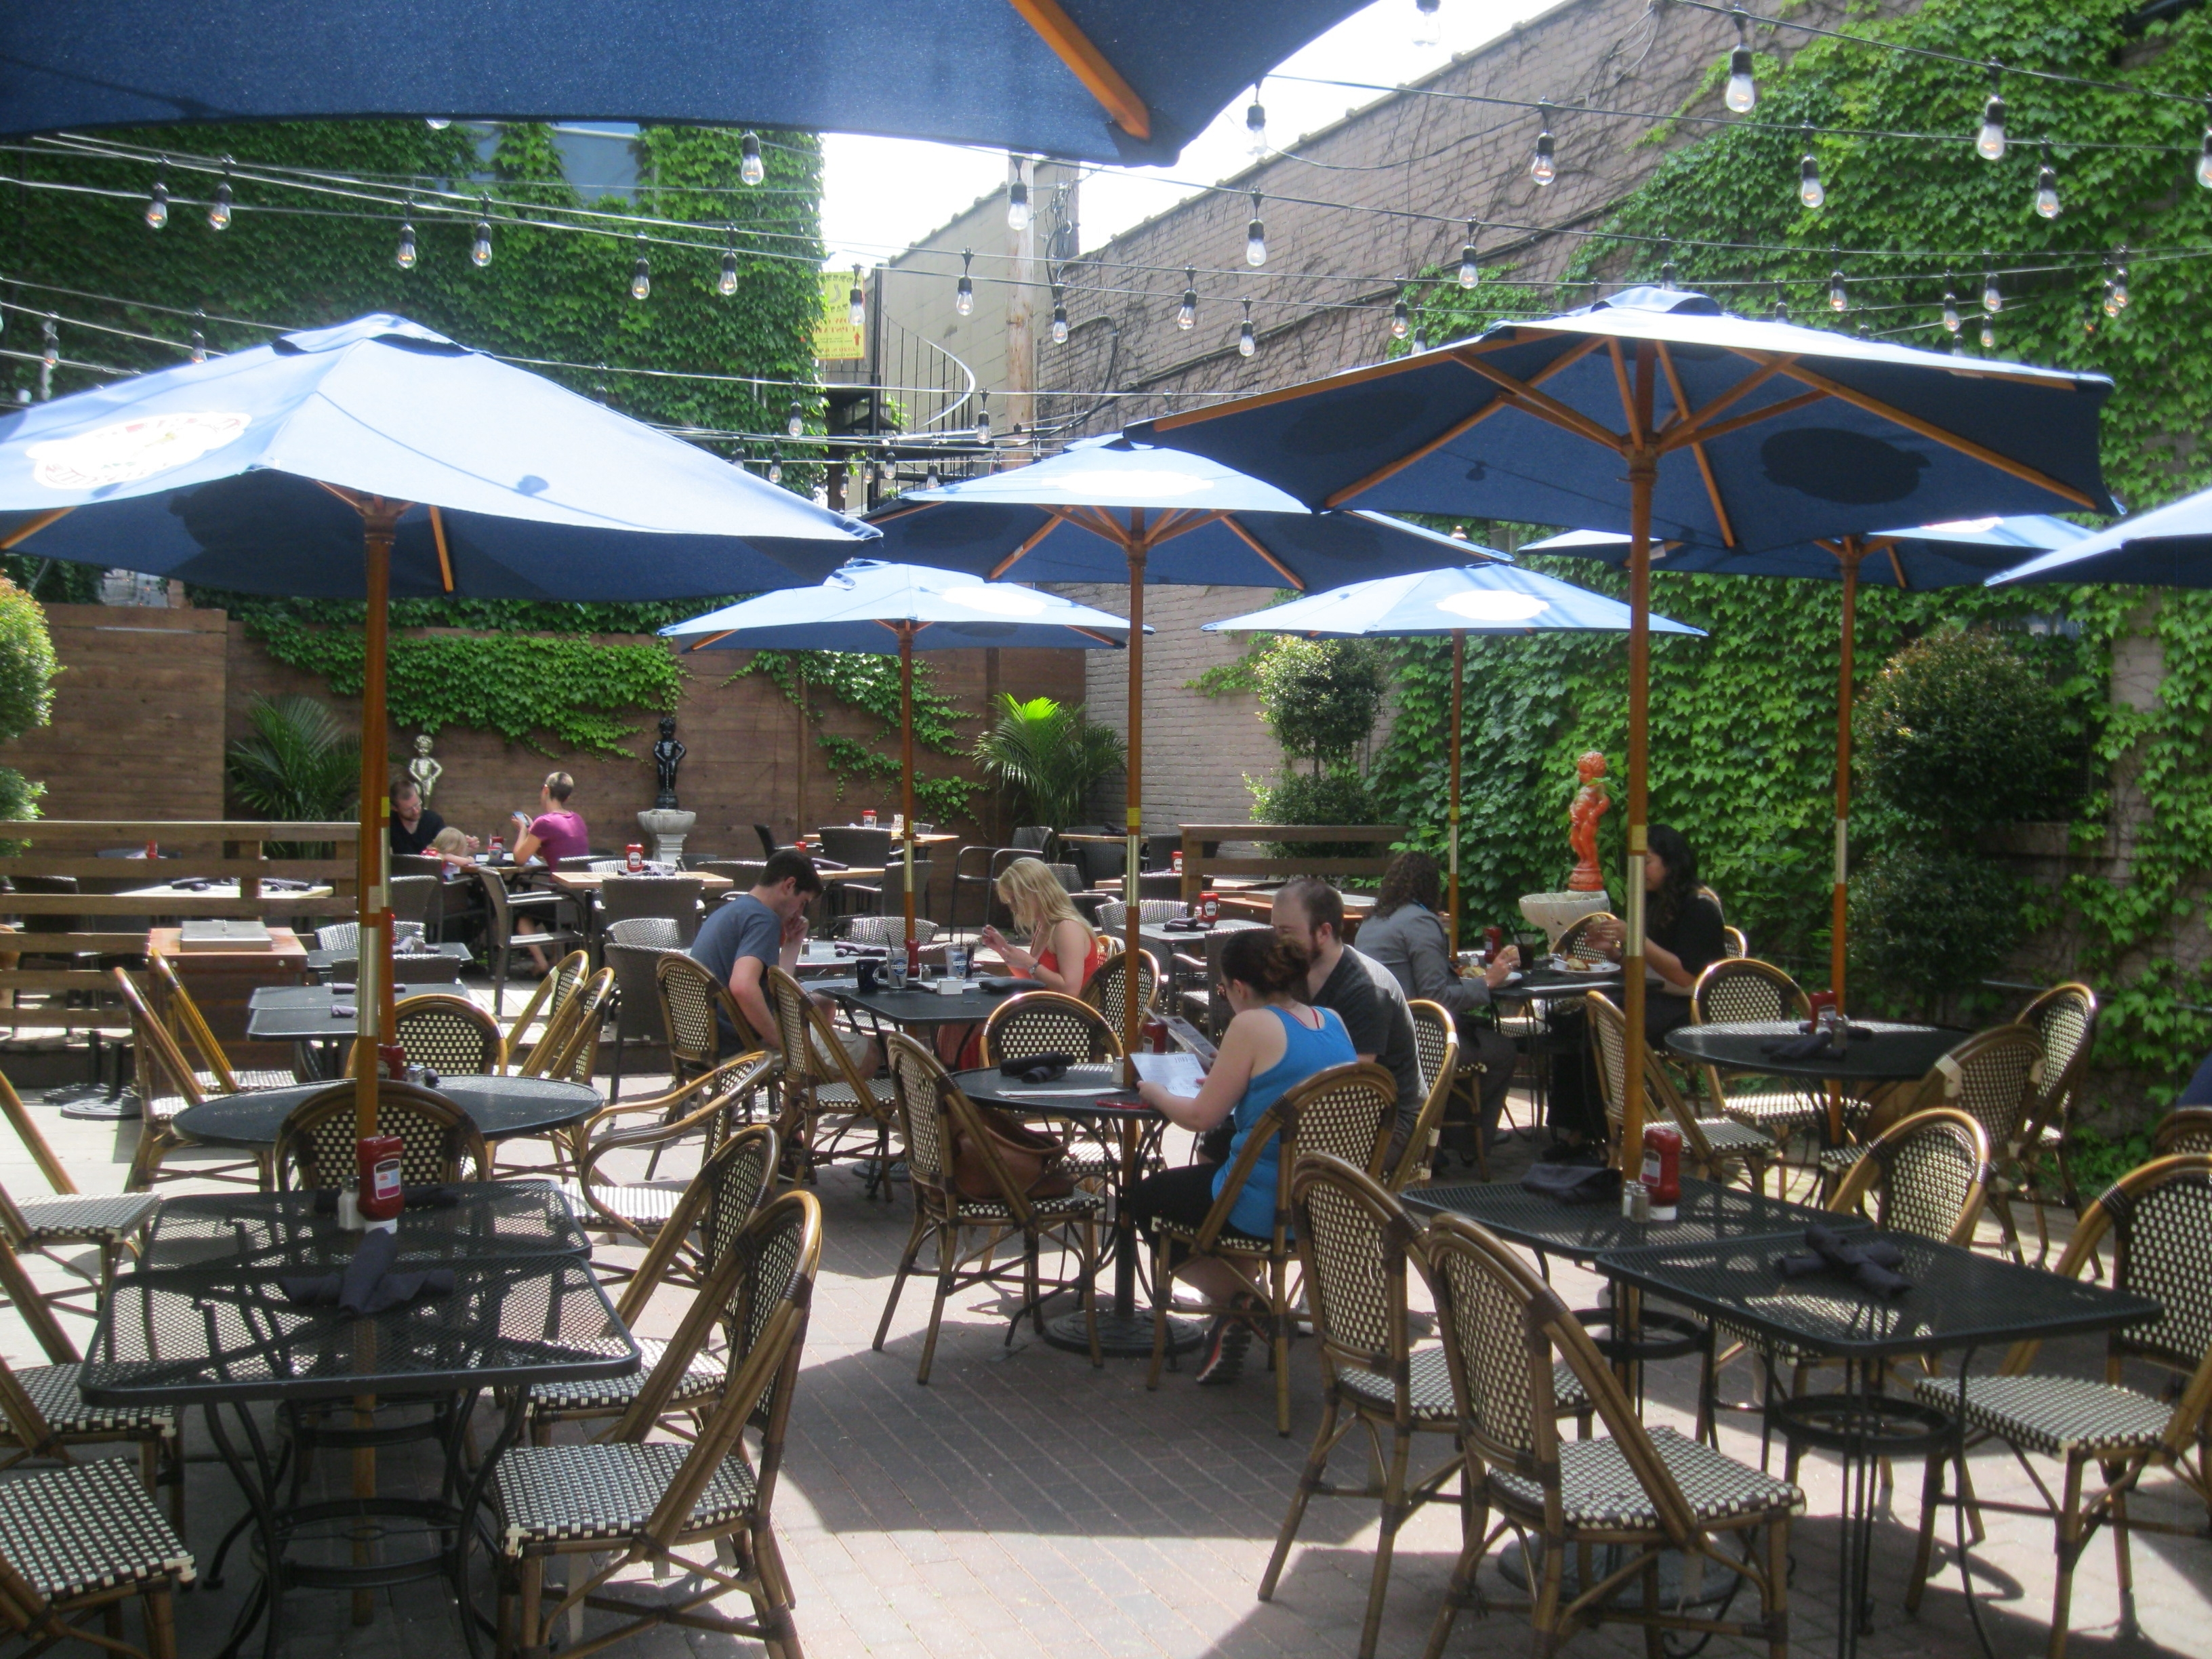 Patio Dining Umbrellas Regarding 2019 Dining: 50 Great Places For Patio Dining » Urban Milwaukee (View 11 of 20)